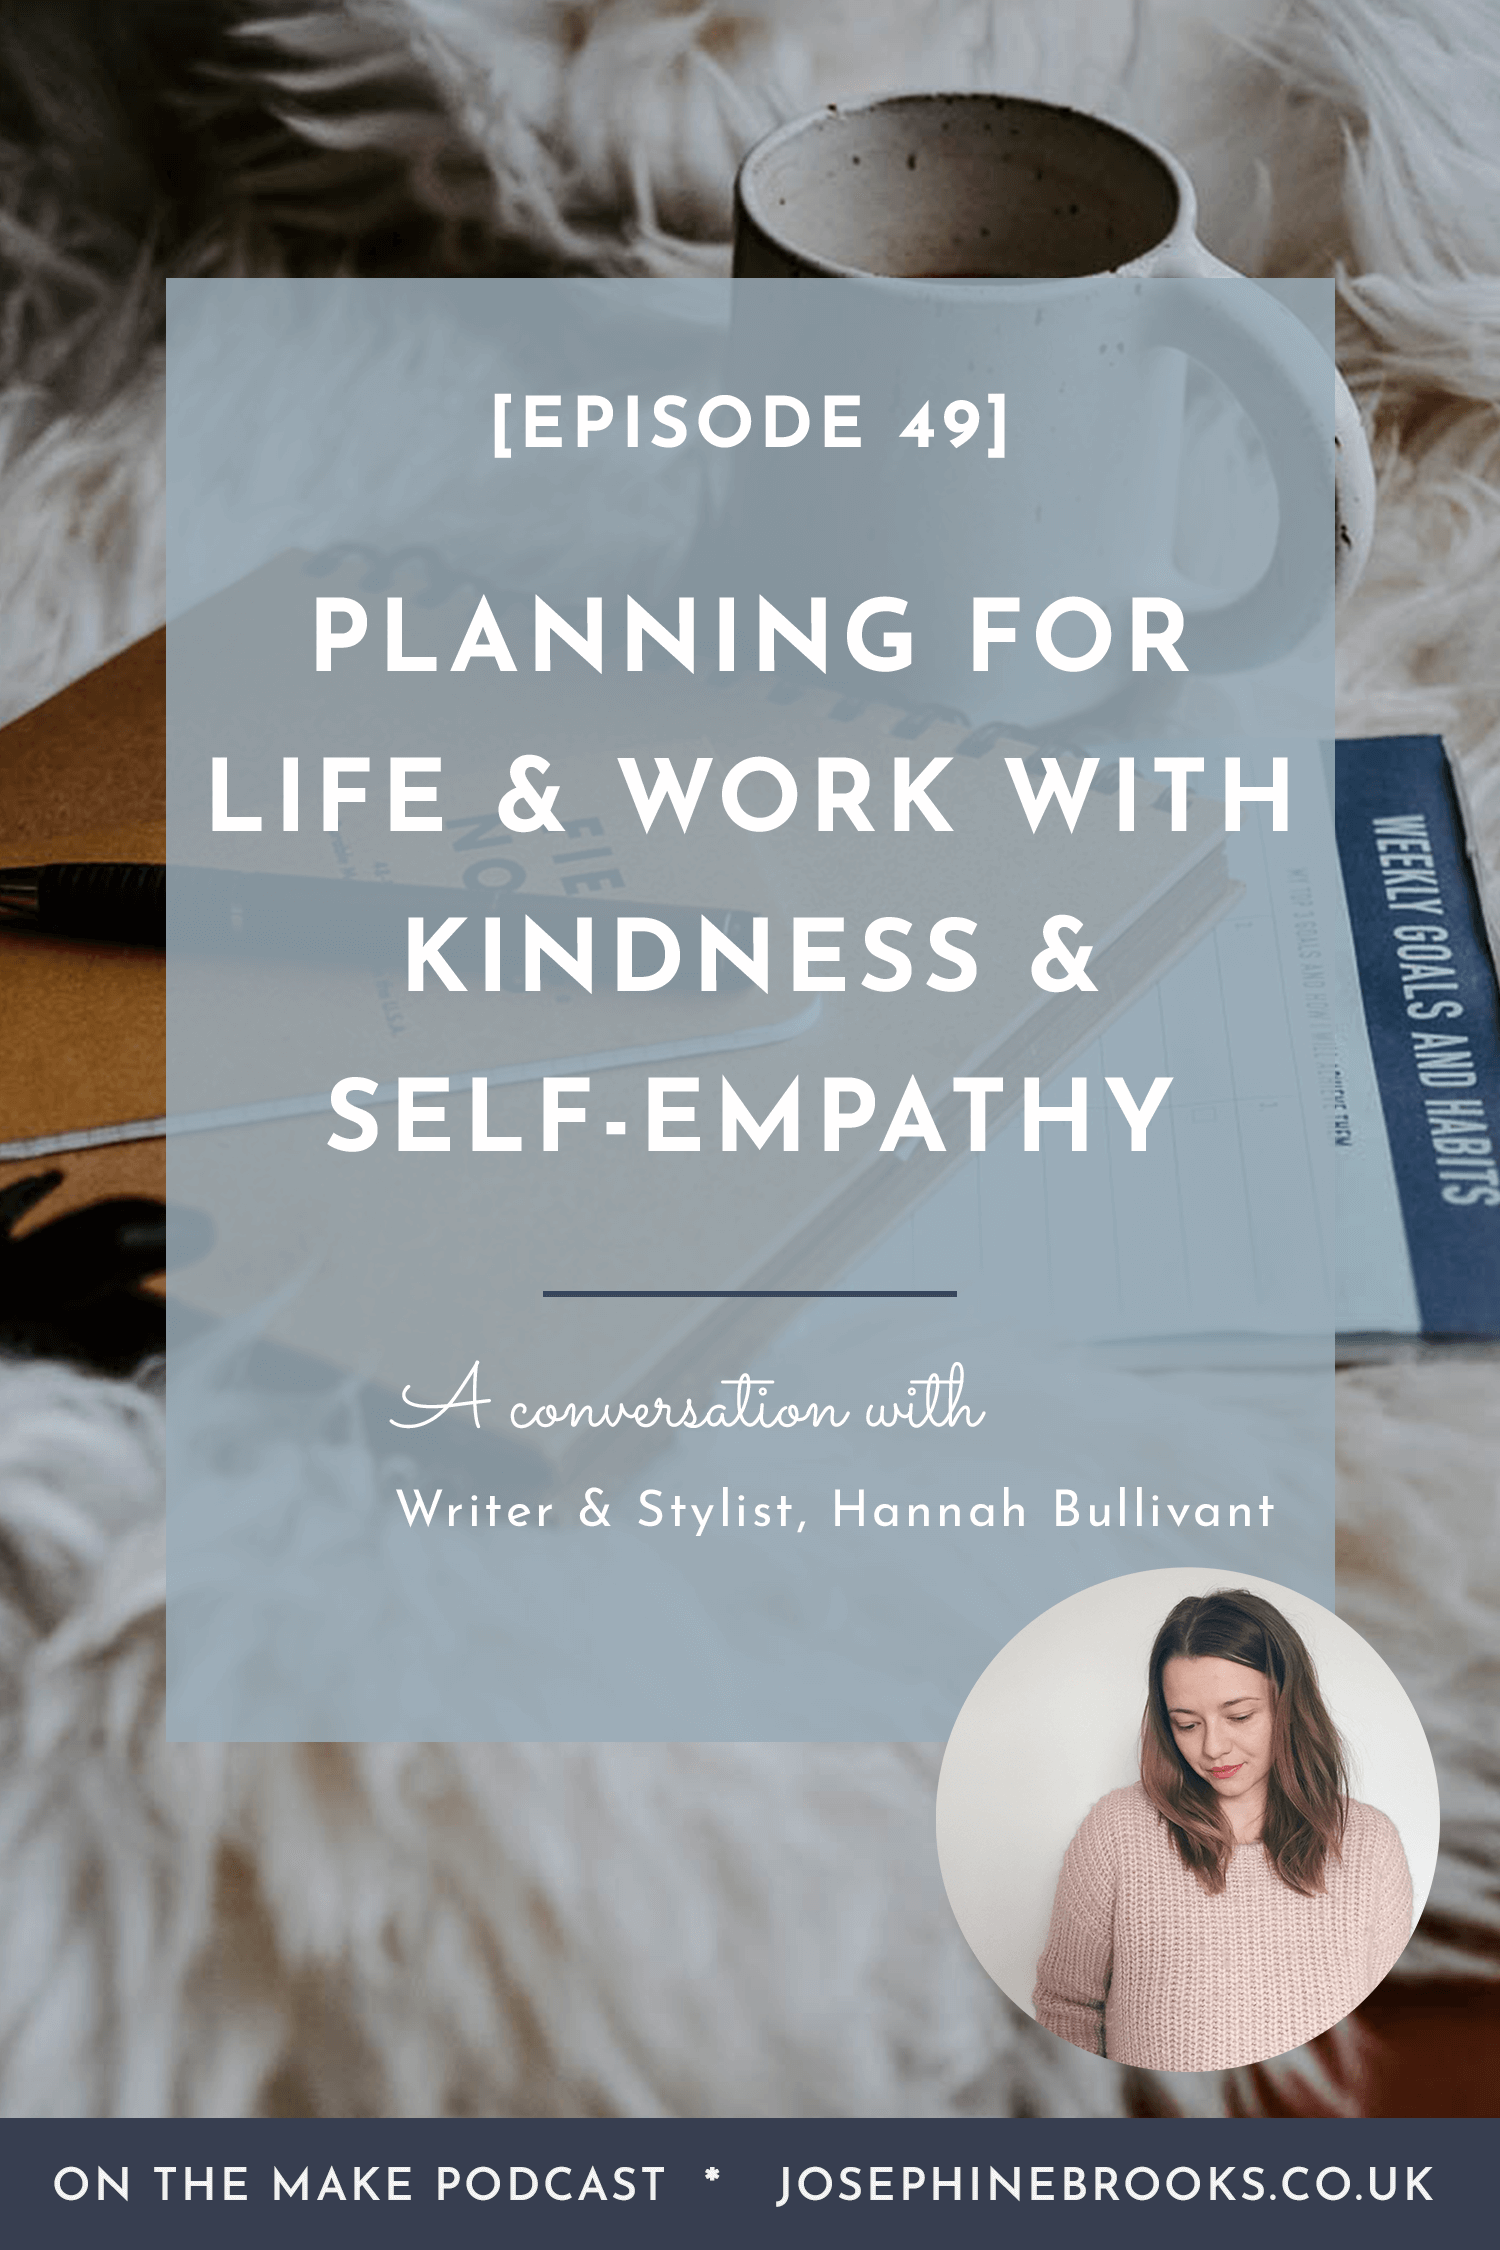 Planning for Work & Life with Kindness and Self-Empathy with Hannah Bullivant - Episode 49 of On The Make podcast hosted by Josephine Brooks